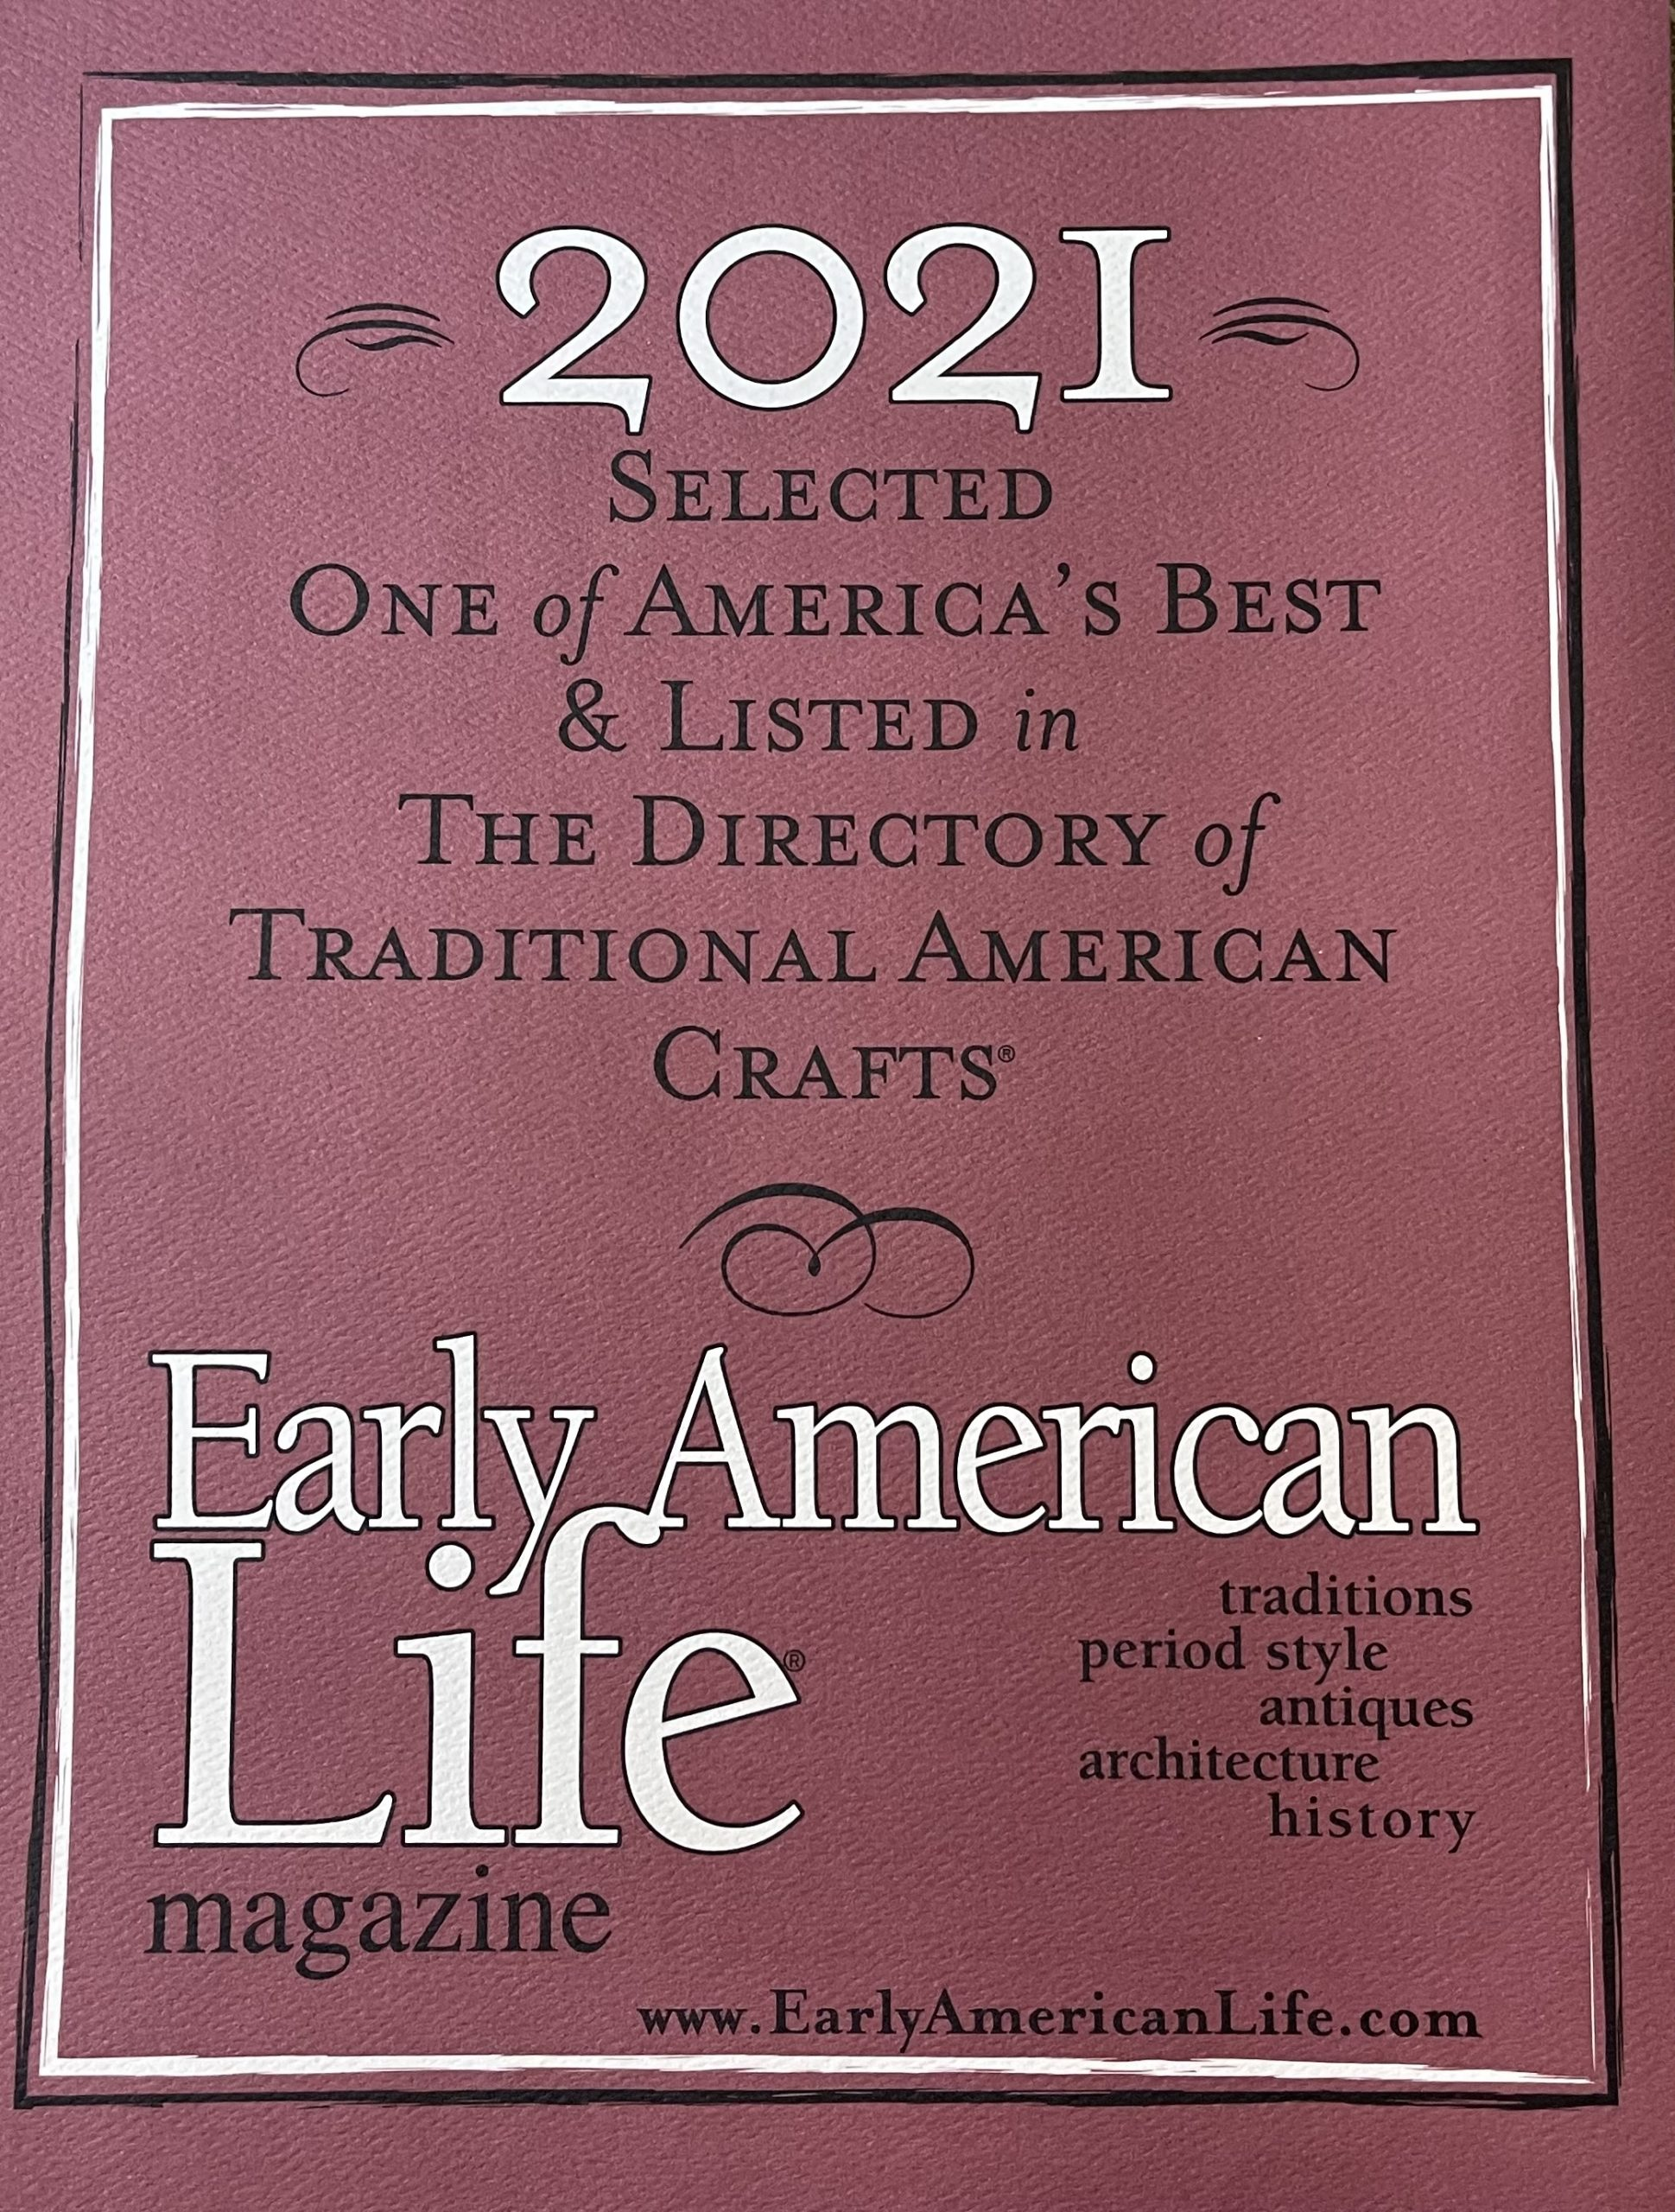 Directory of Tradition American Craft for Early American Life magazine.